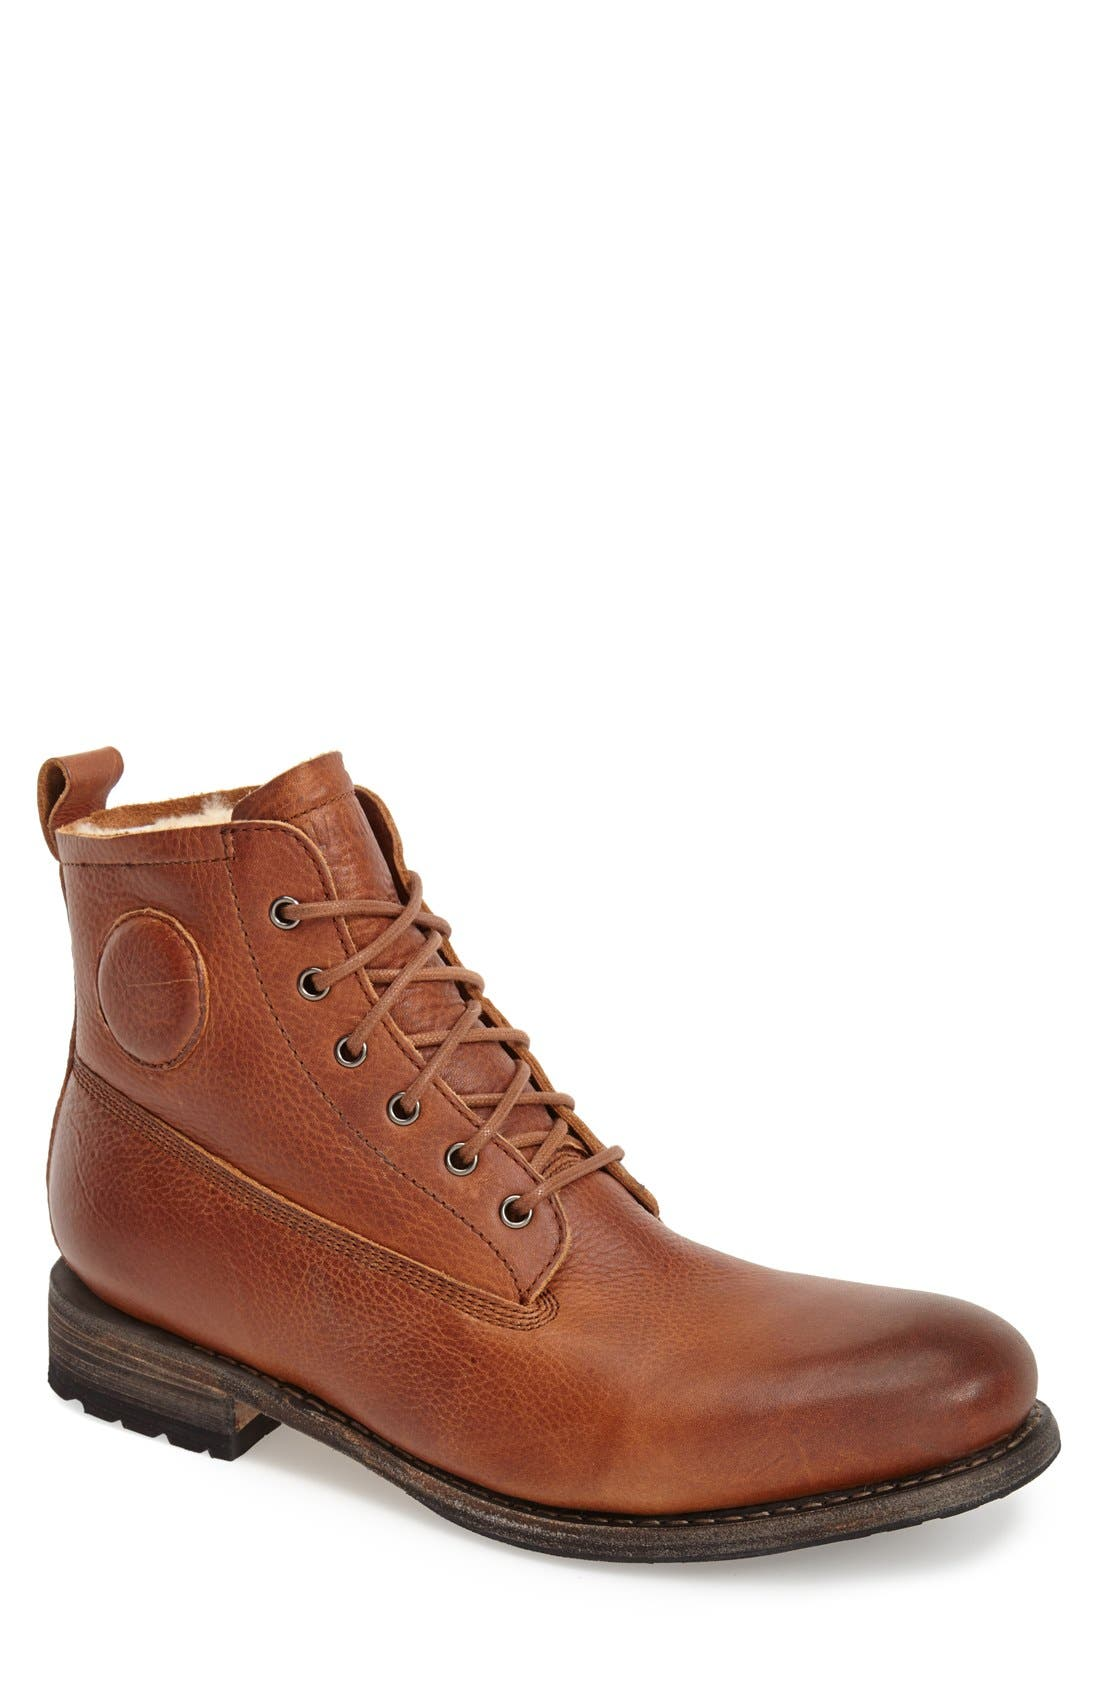 'Gull' Plain Toe Boot,                         Main,                         color, Cuoio